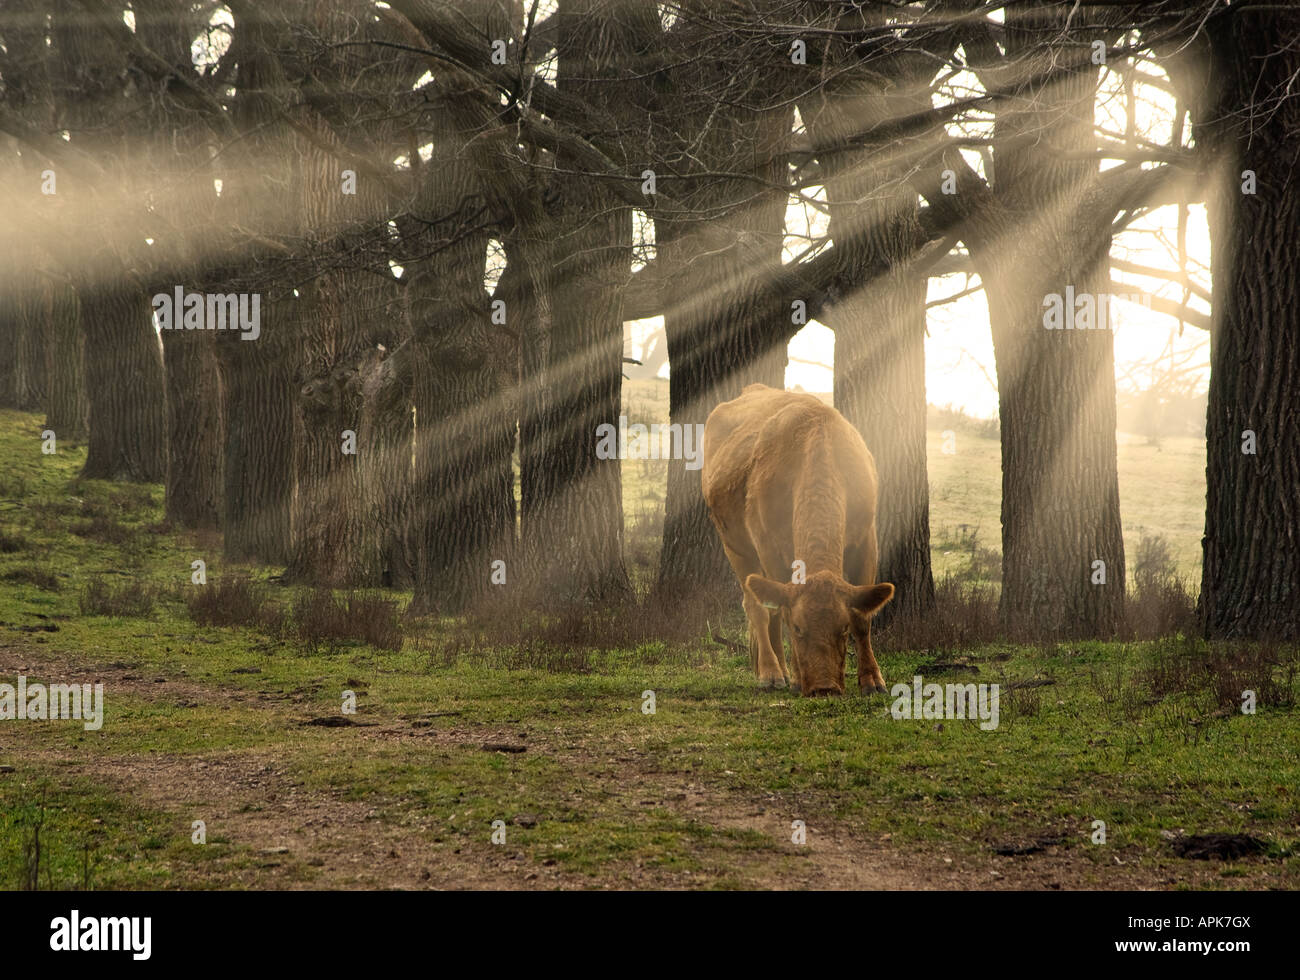 a cow eats grass in the morning with sun rays coming through the trees - Stock Image